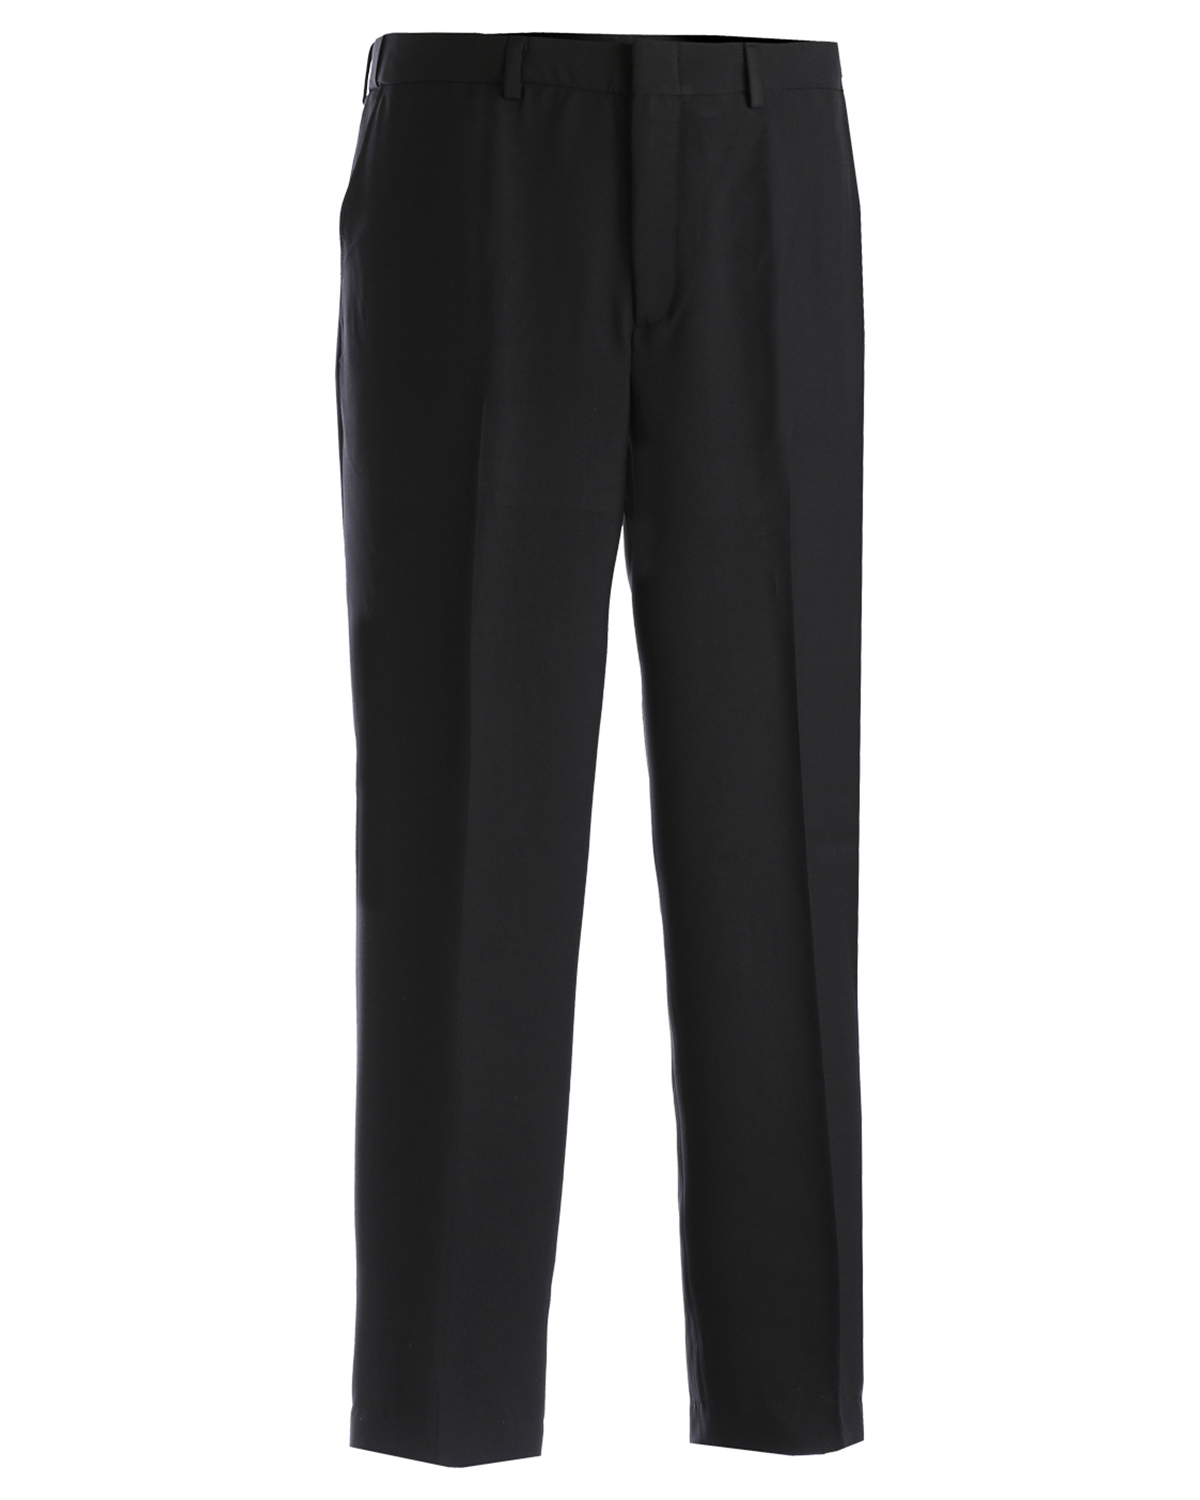 Edwards 2588 Men's Natural Stretch Flat Front Easy Fit Microfiber Pants at GotApparel